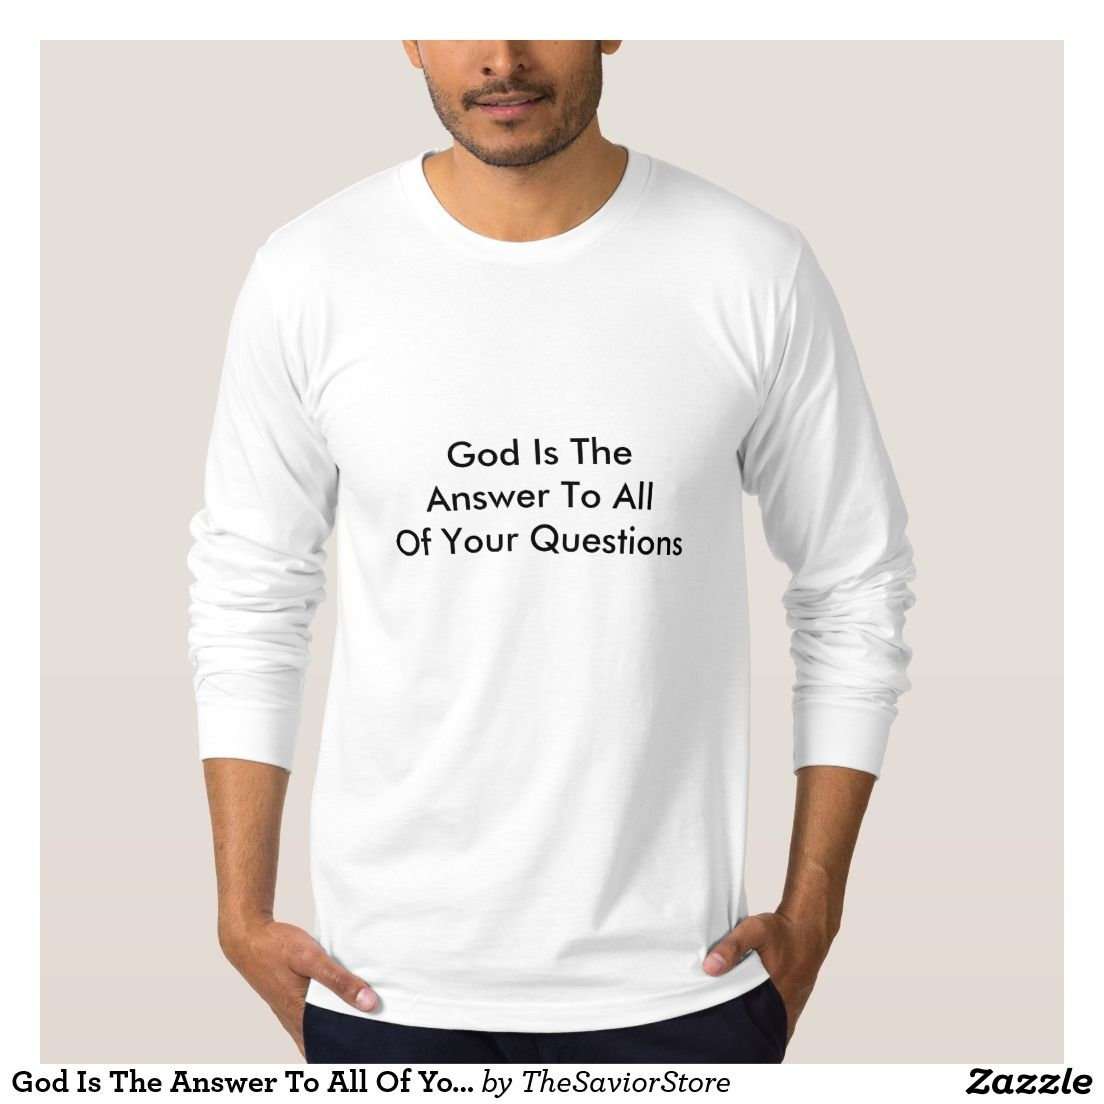 God Is The Answer To All Of Your Questions T-shirt